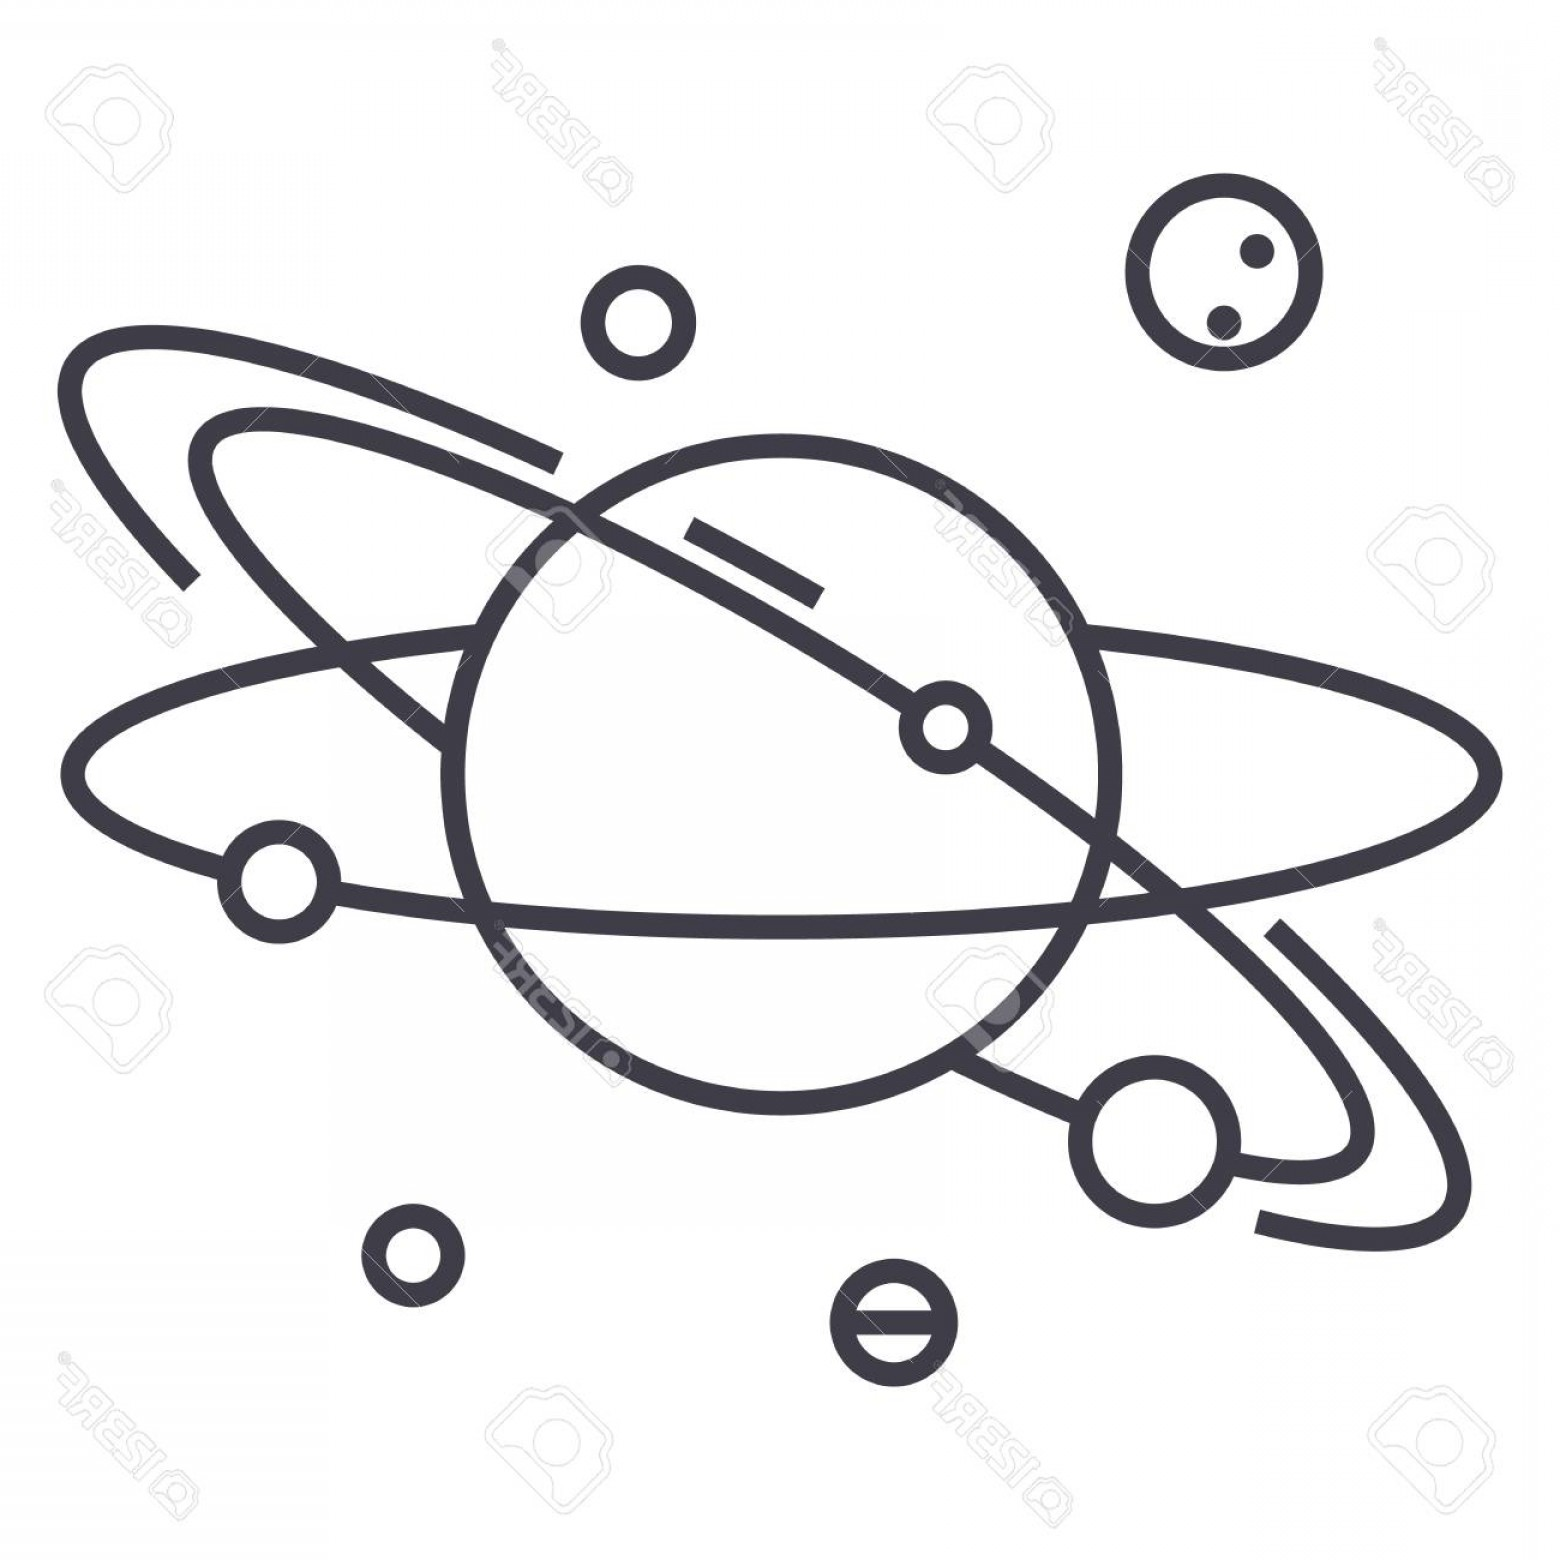 Planet drawing. Free download best on